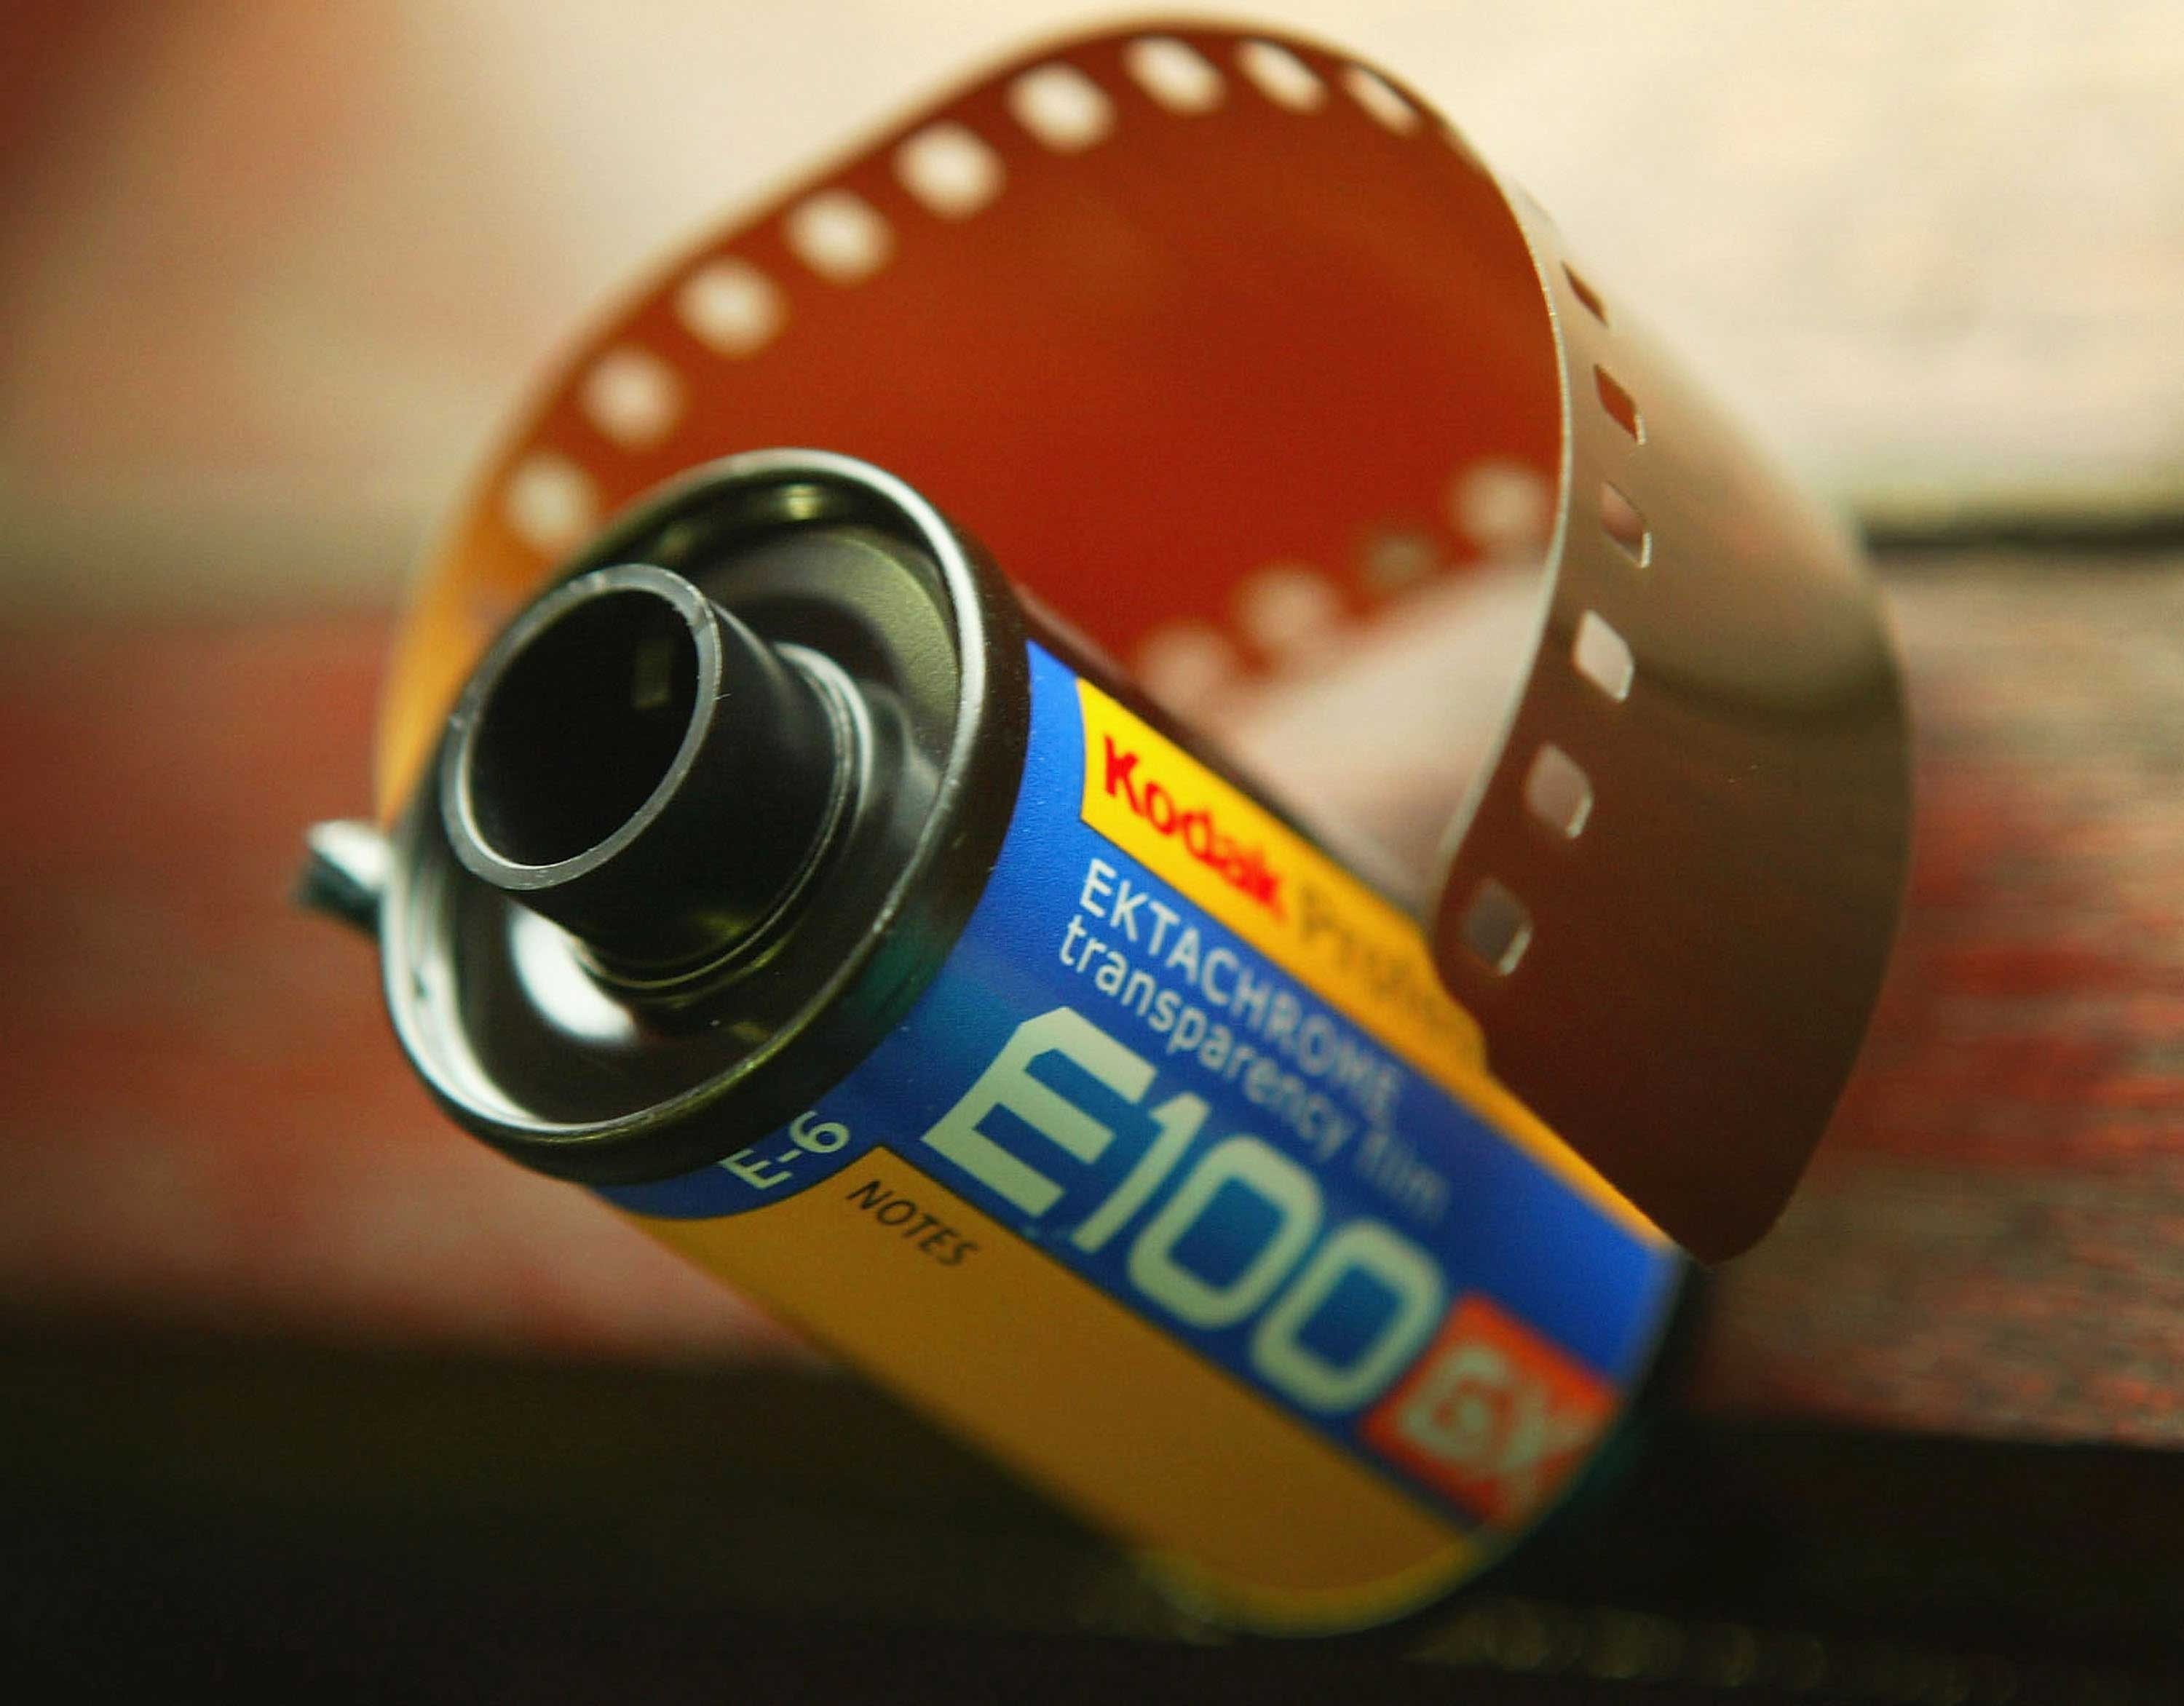 A roll of Koday's Ektachrome film.